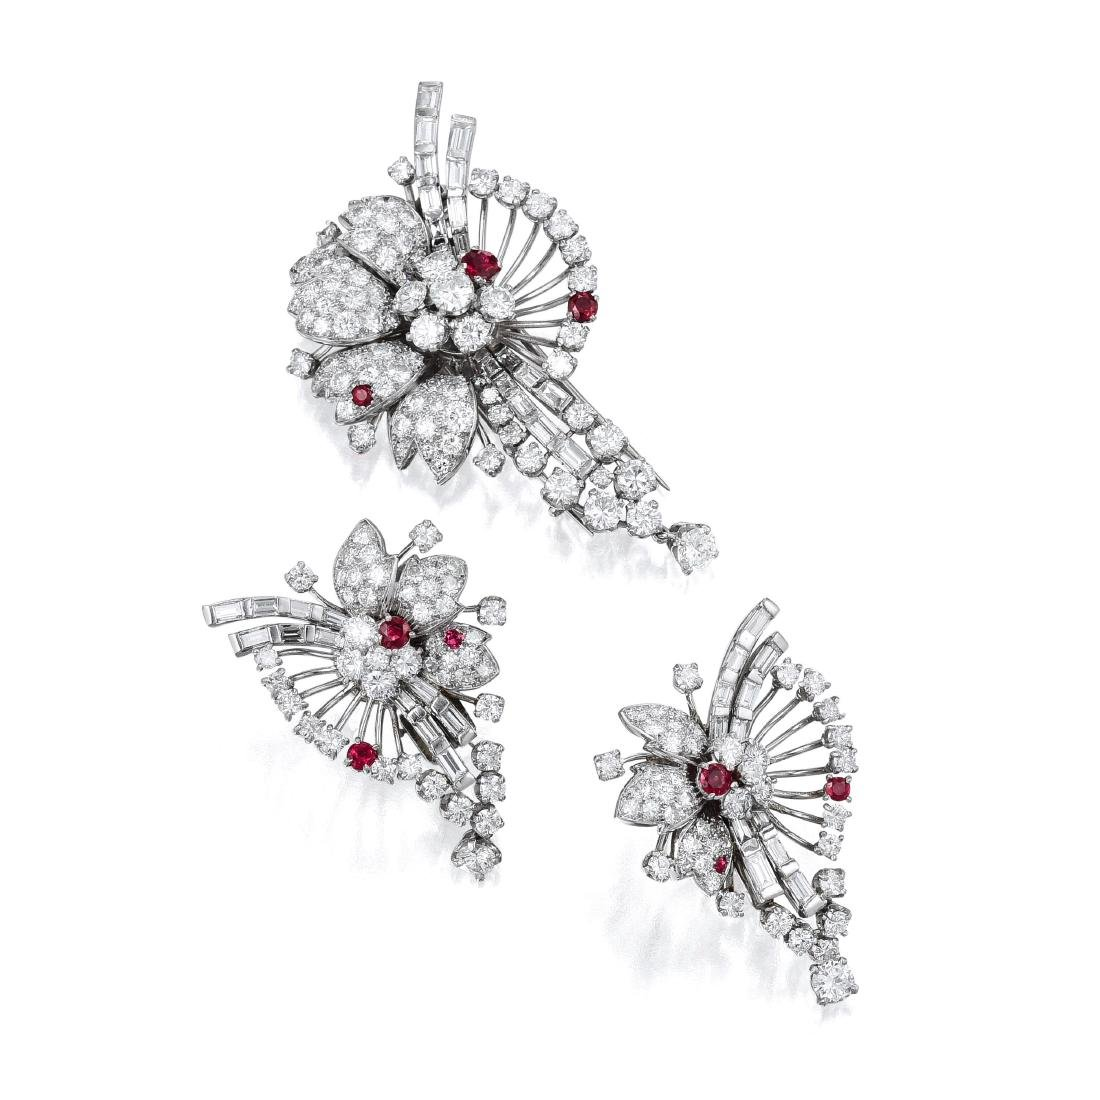 A Platinum Diamond and Ruby Ear Clip and Brooch Set